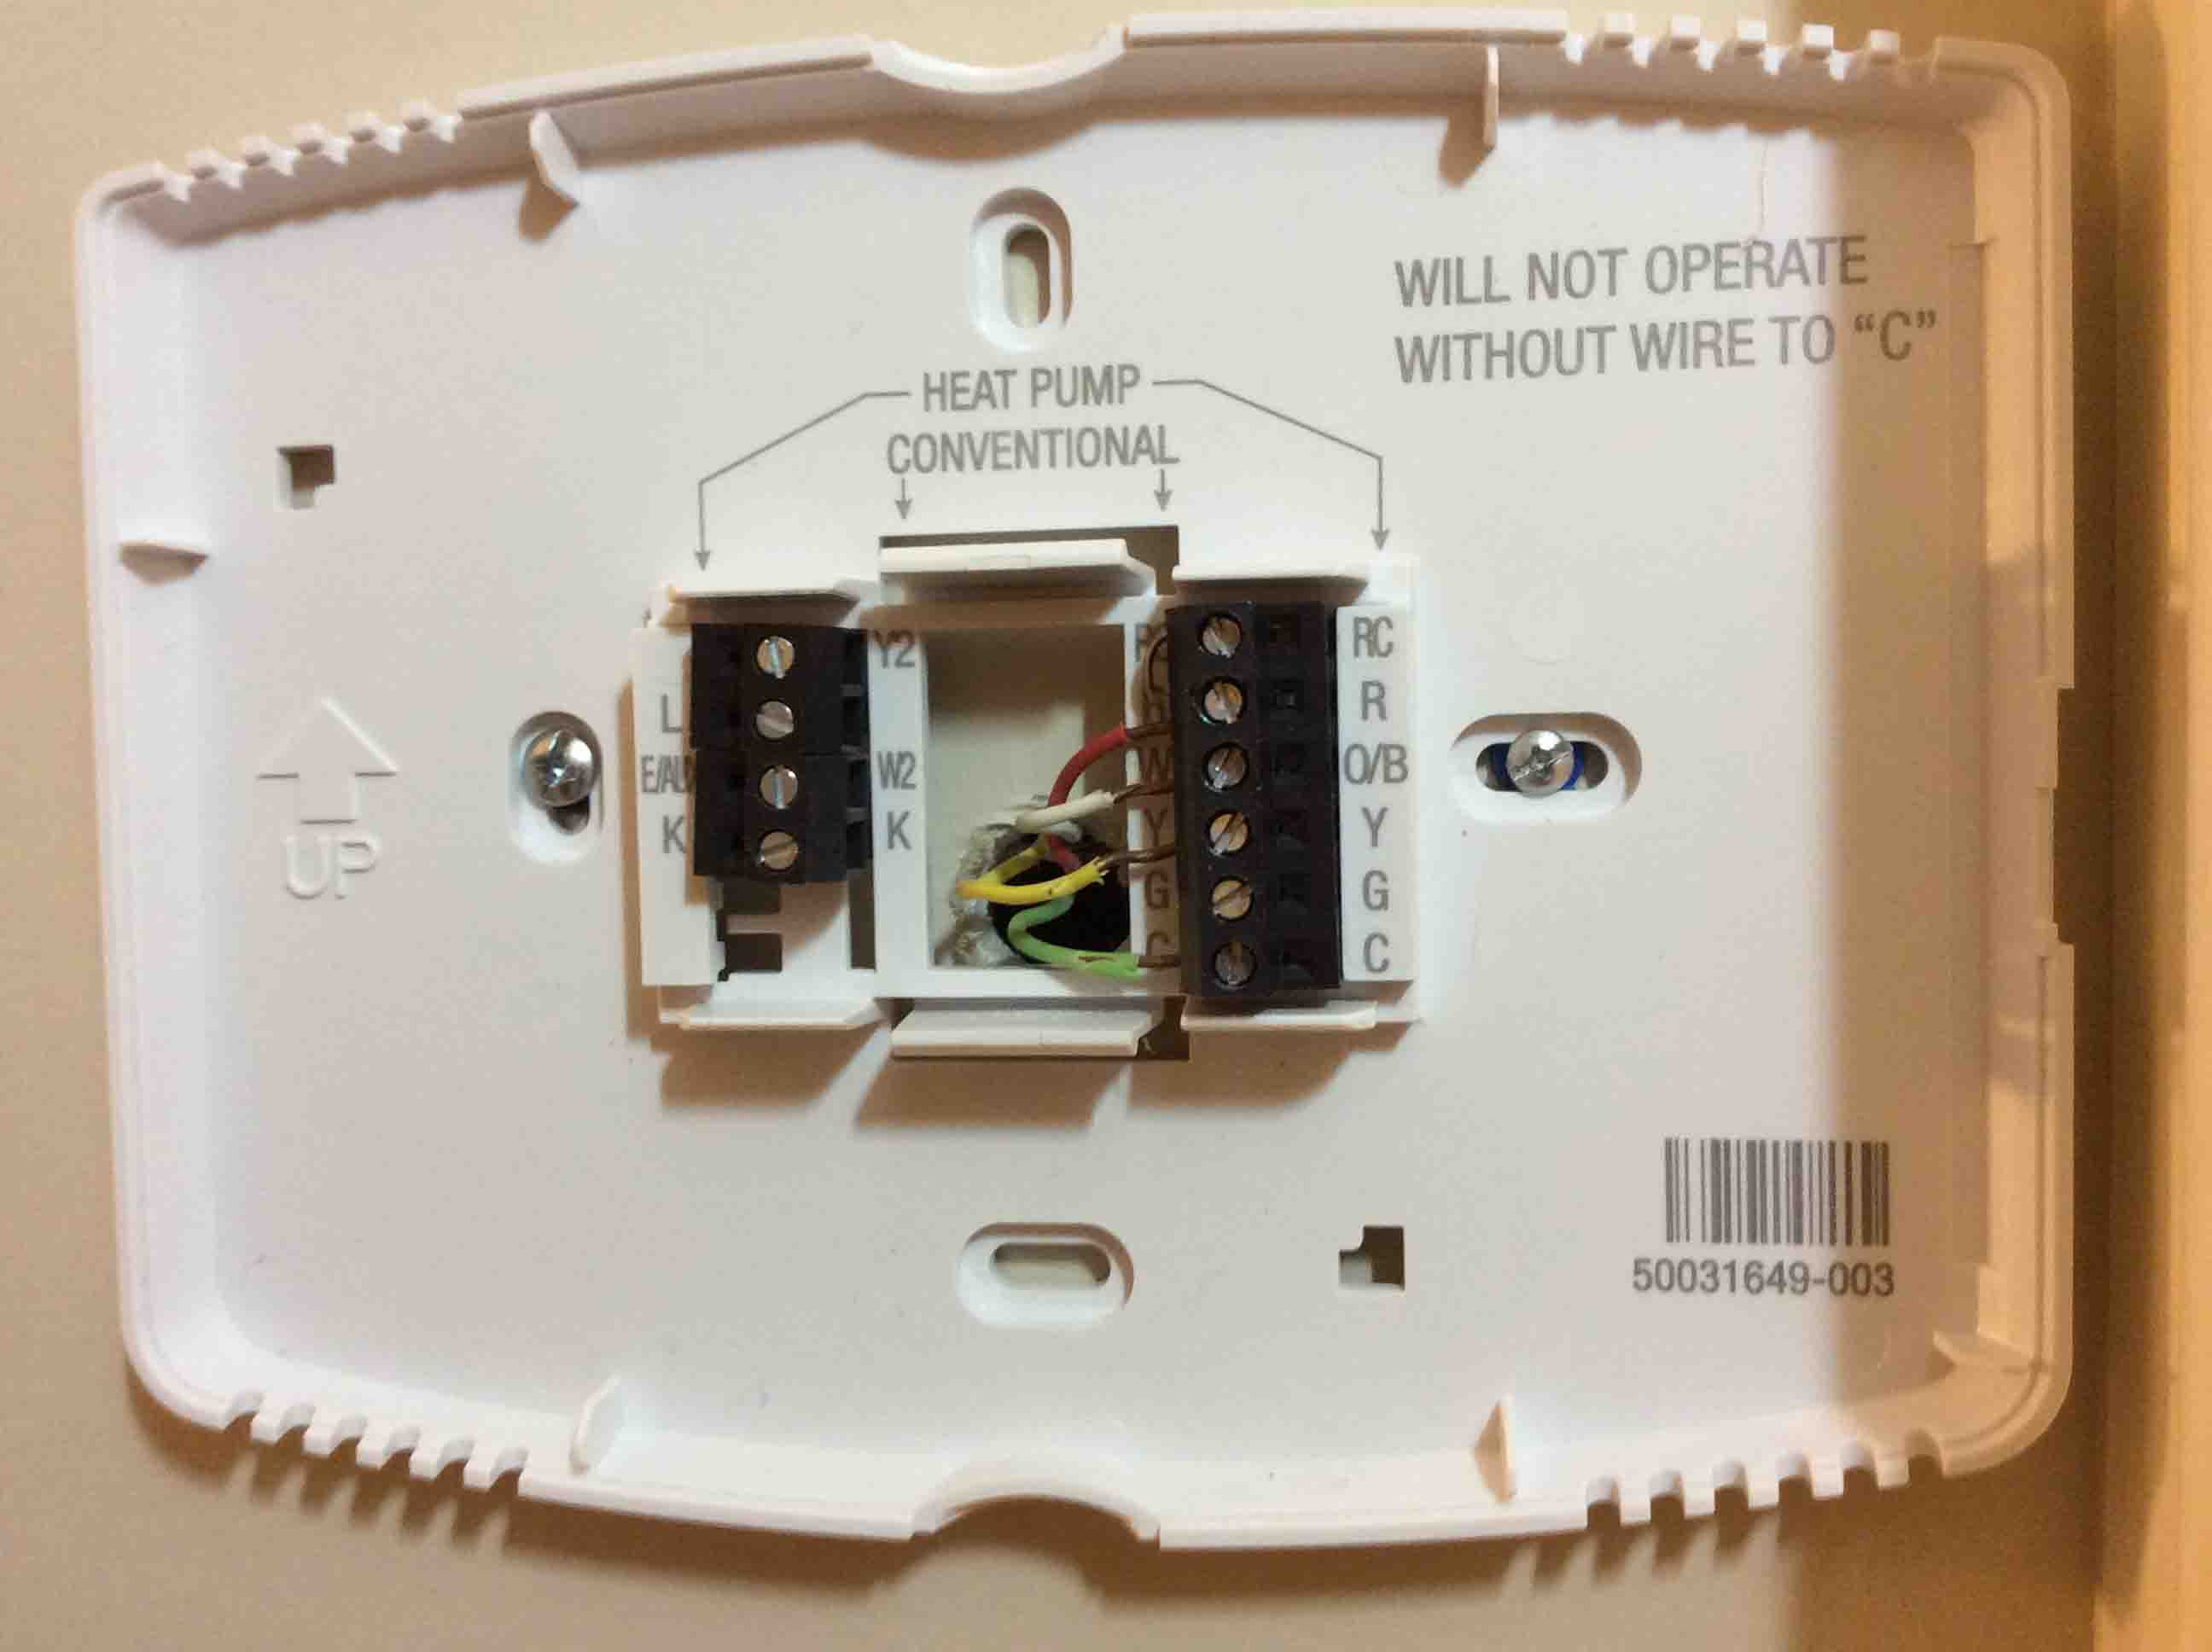 HoneywellWiFiThermostatWallPlateTypicalWiring_001 honeywell smart thermostat wiring instructions rth9580wf tom's wiring diagram for honeywell rth6580wf at n-0.co